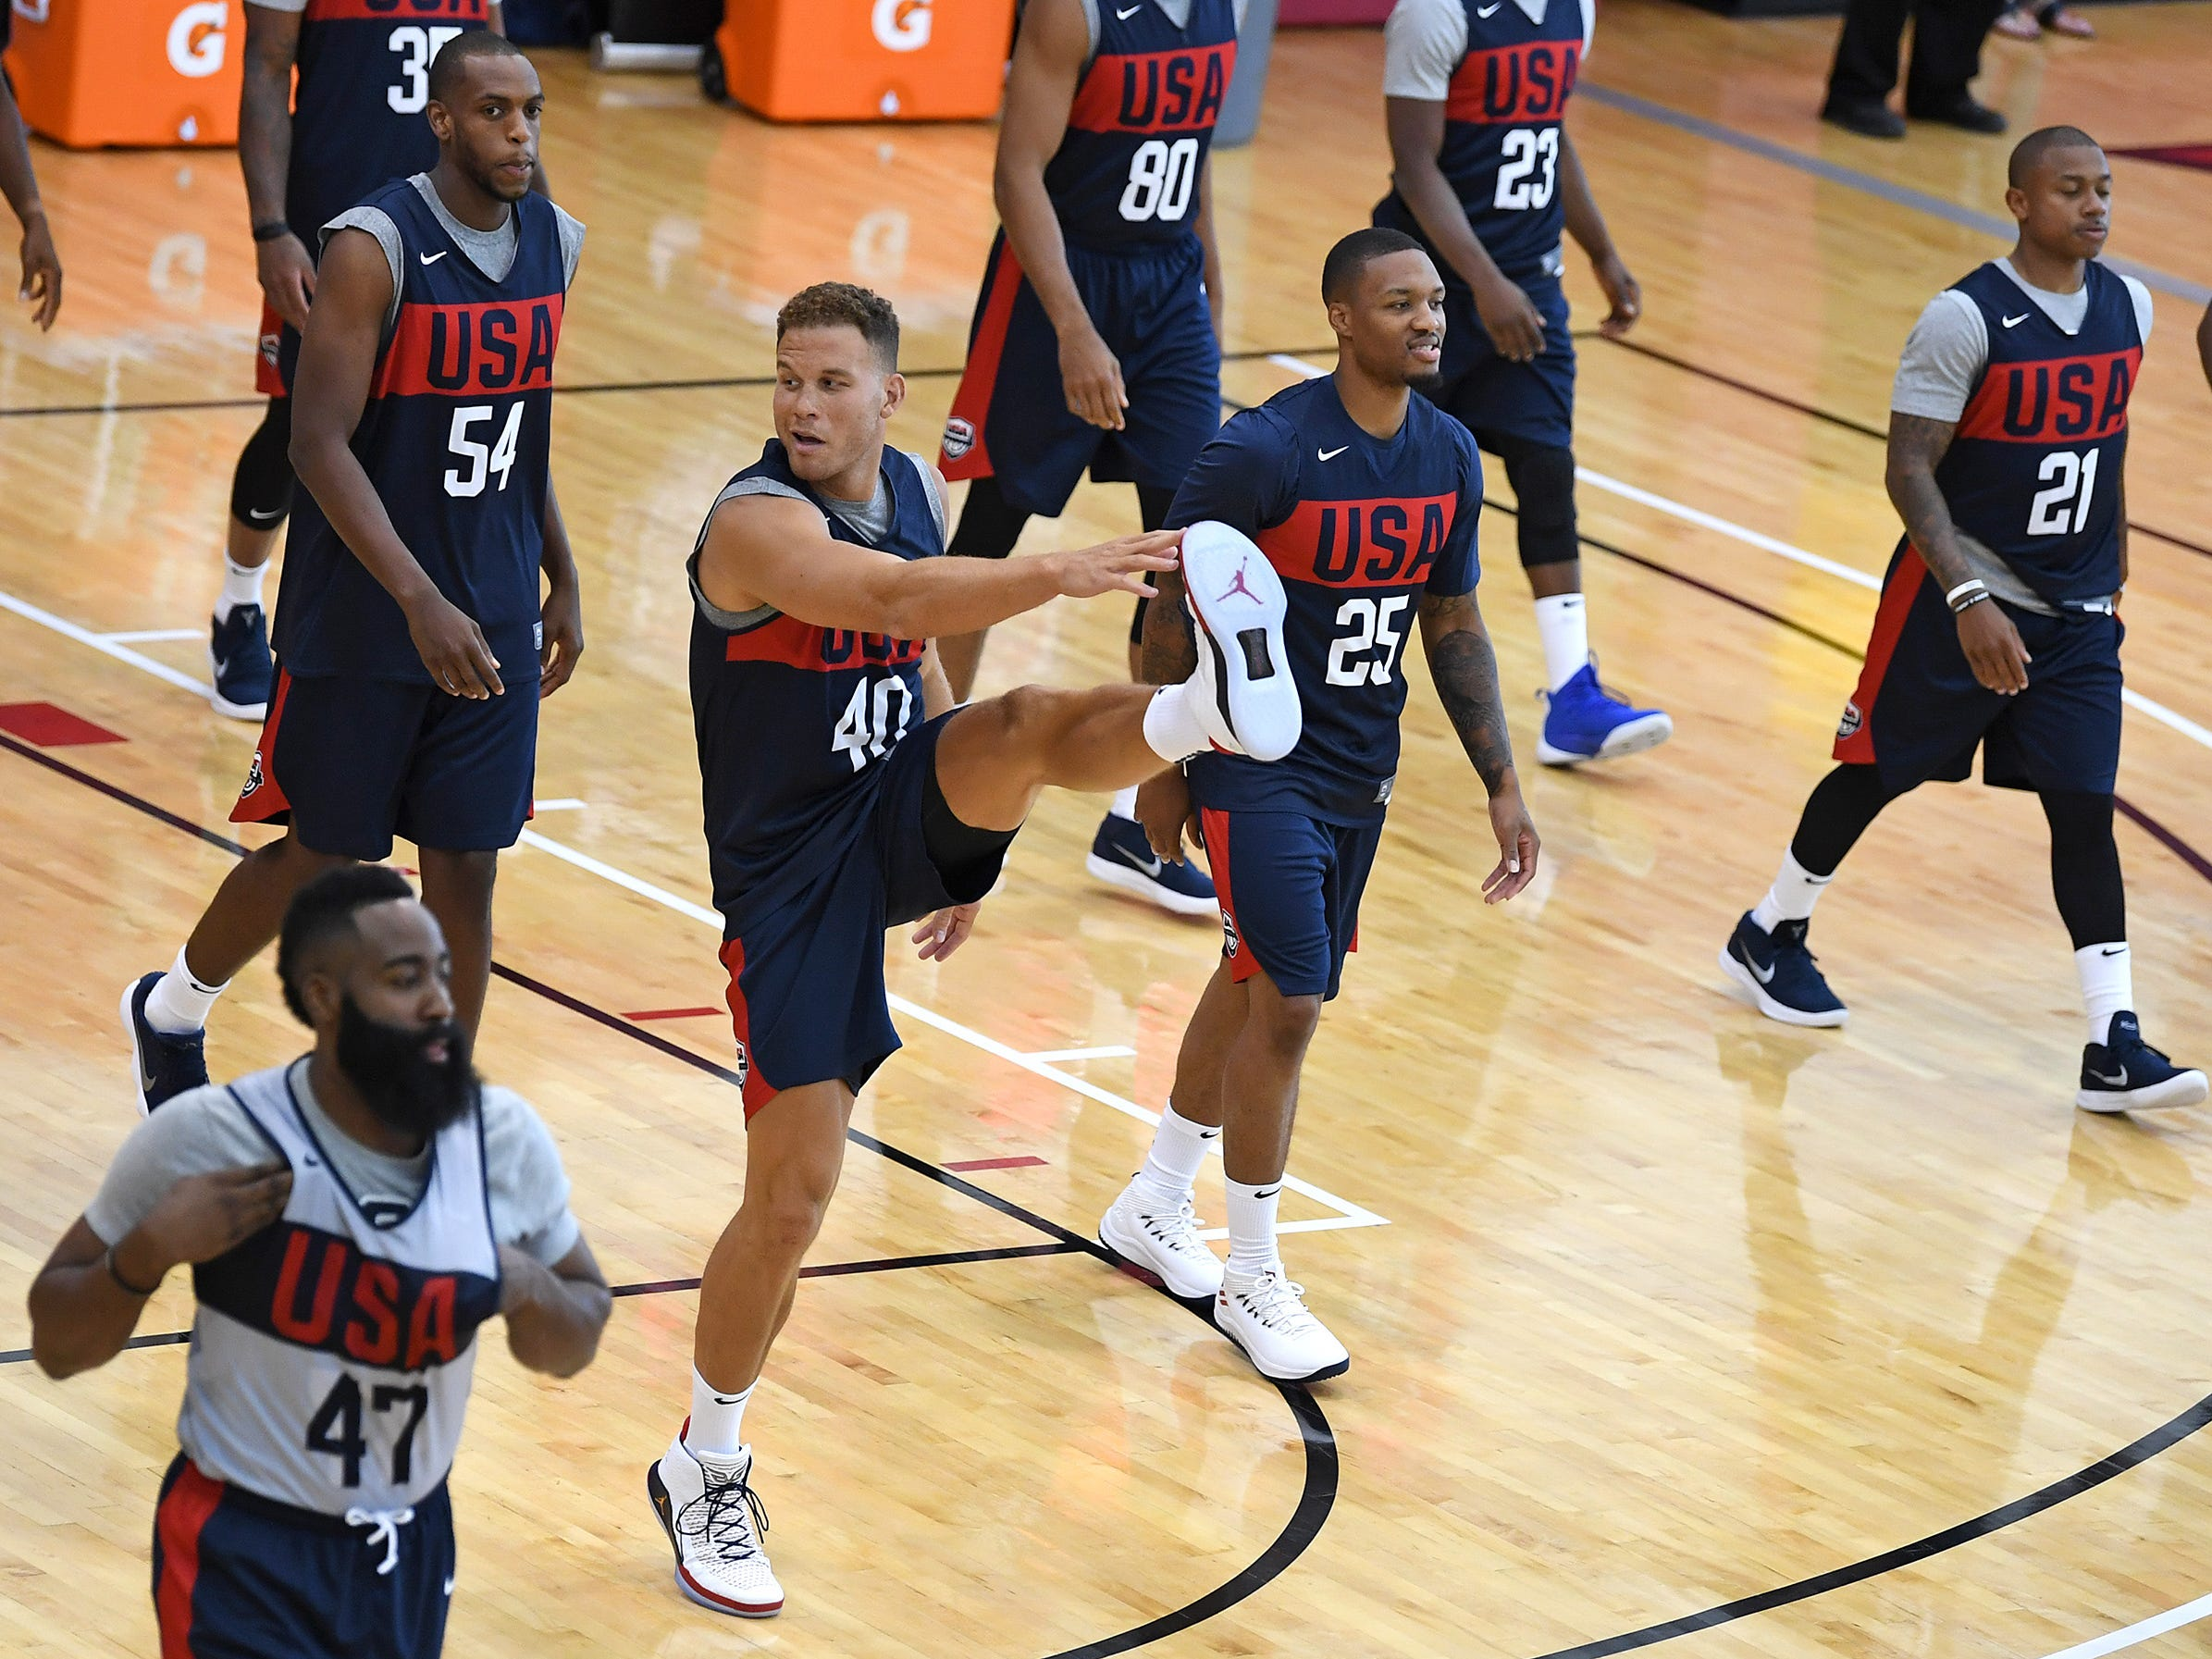 Blake Griffin warms up with teammates at the start of the 2018 USA Basketball National Team Minicamp.